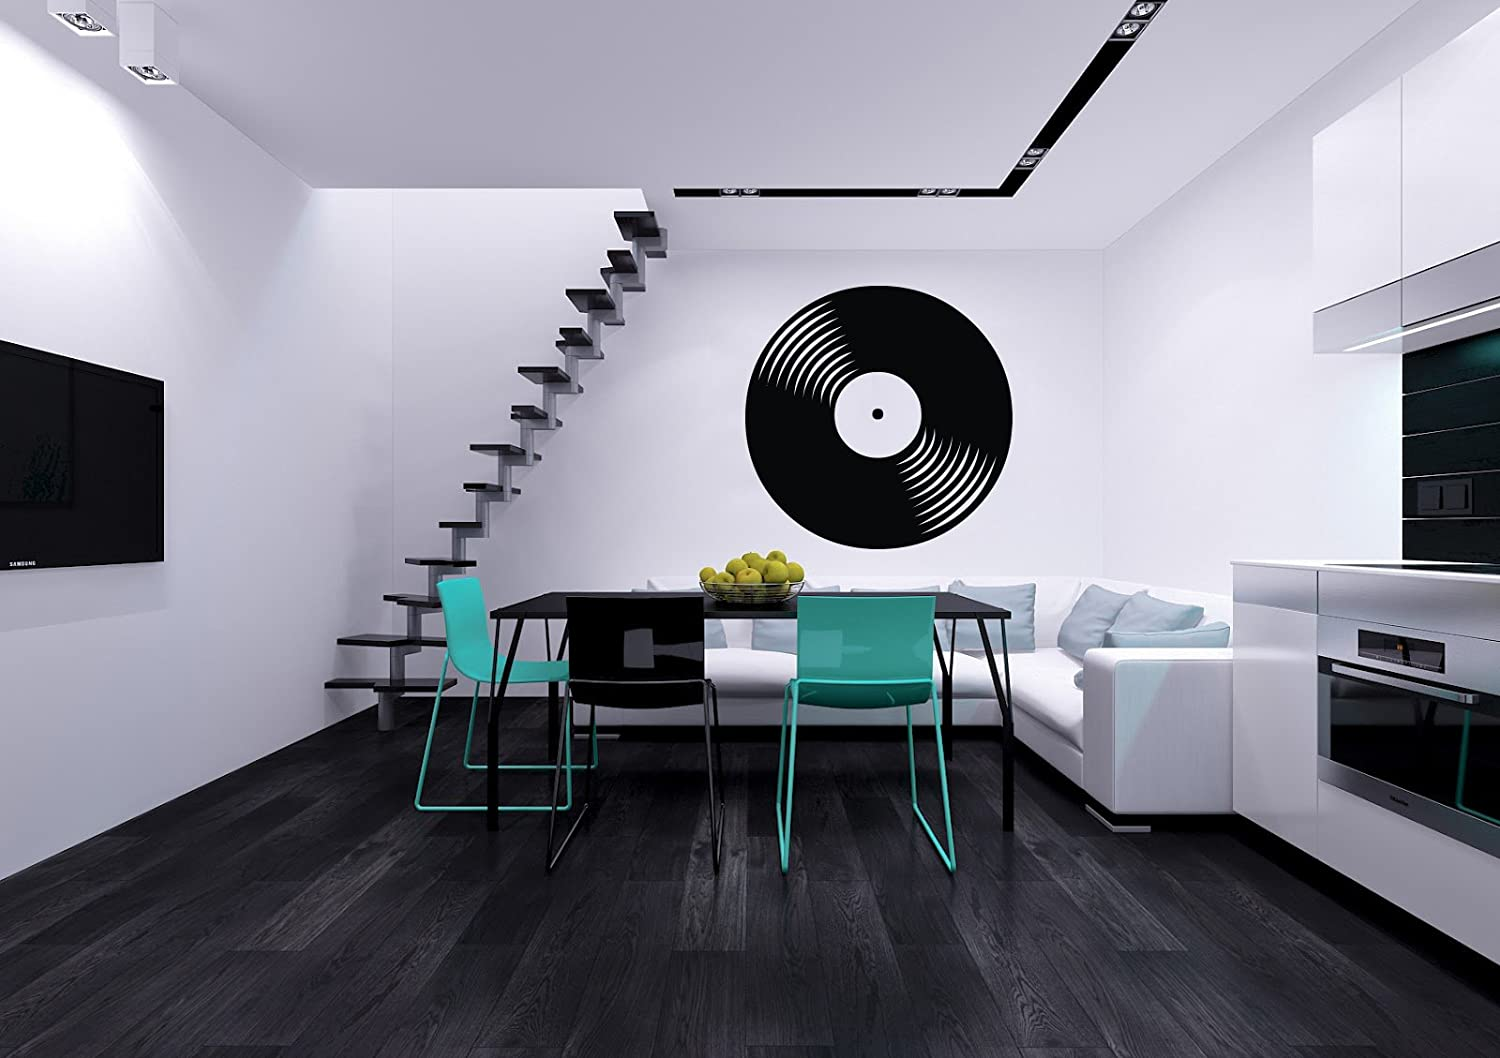 Vinyl Record Musical Decor Recording Music Studio Wall Vinyl Decal Art  Sticker Home Modern Stylish Interior Decor For Any Room Smooth And Flat  Surfaces ...